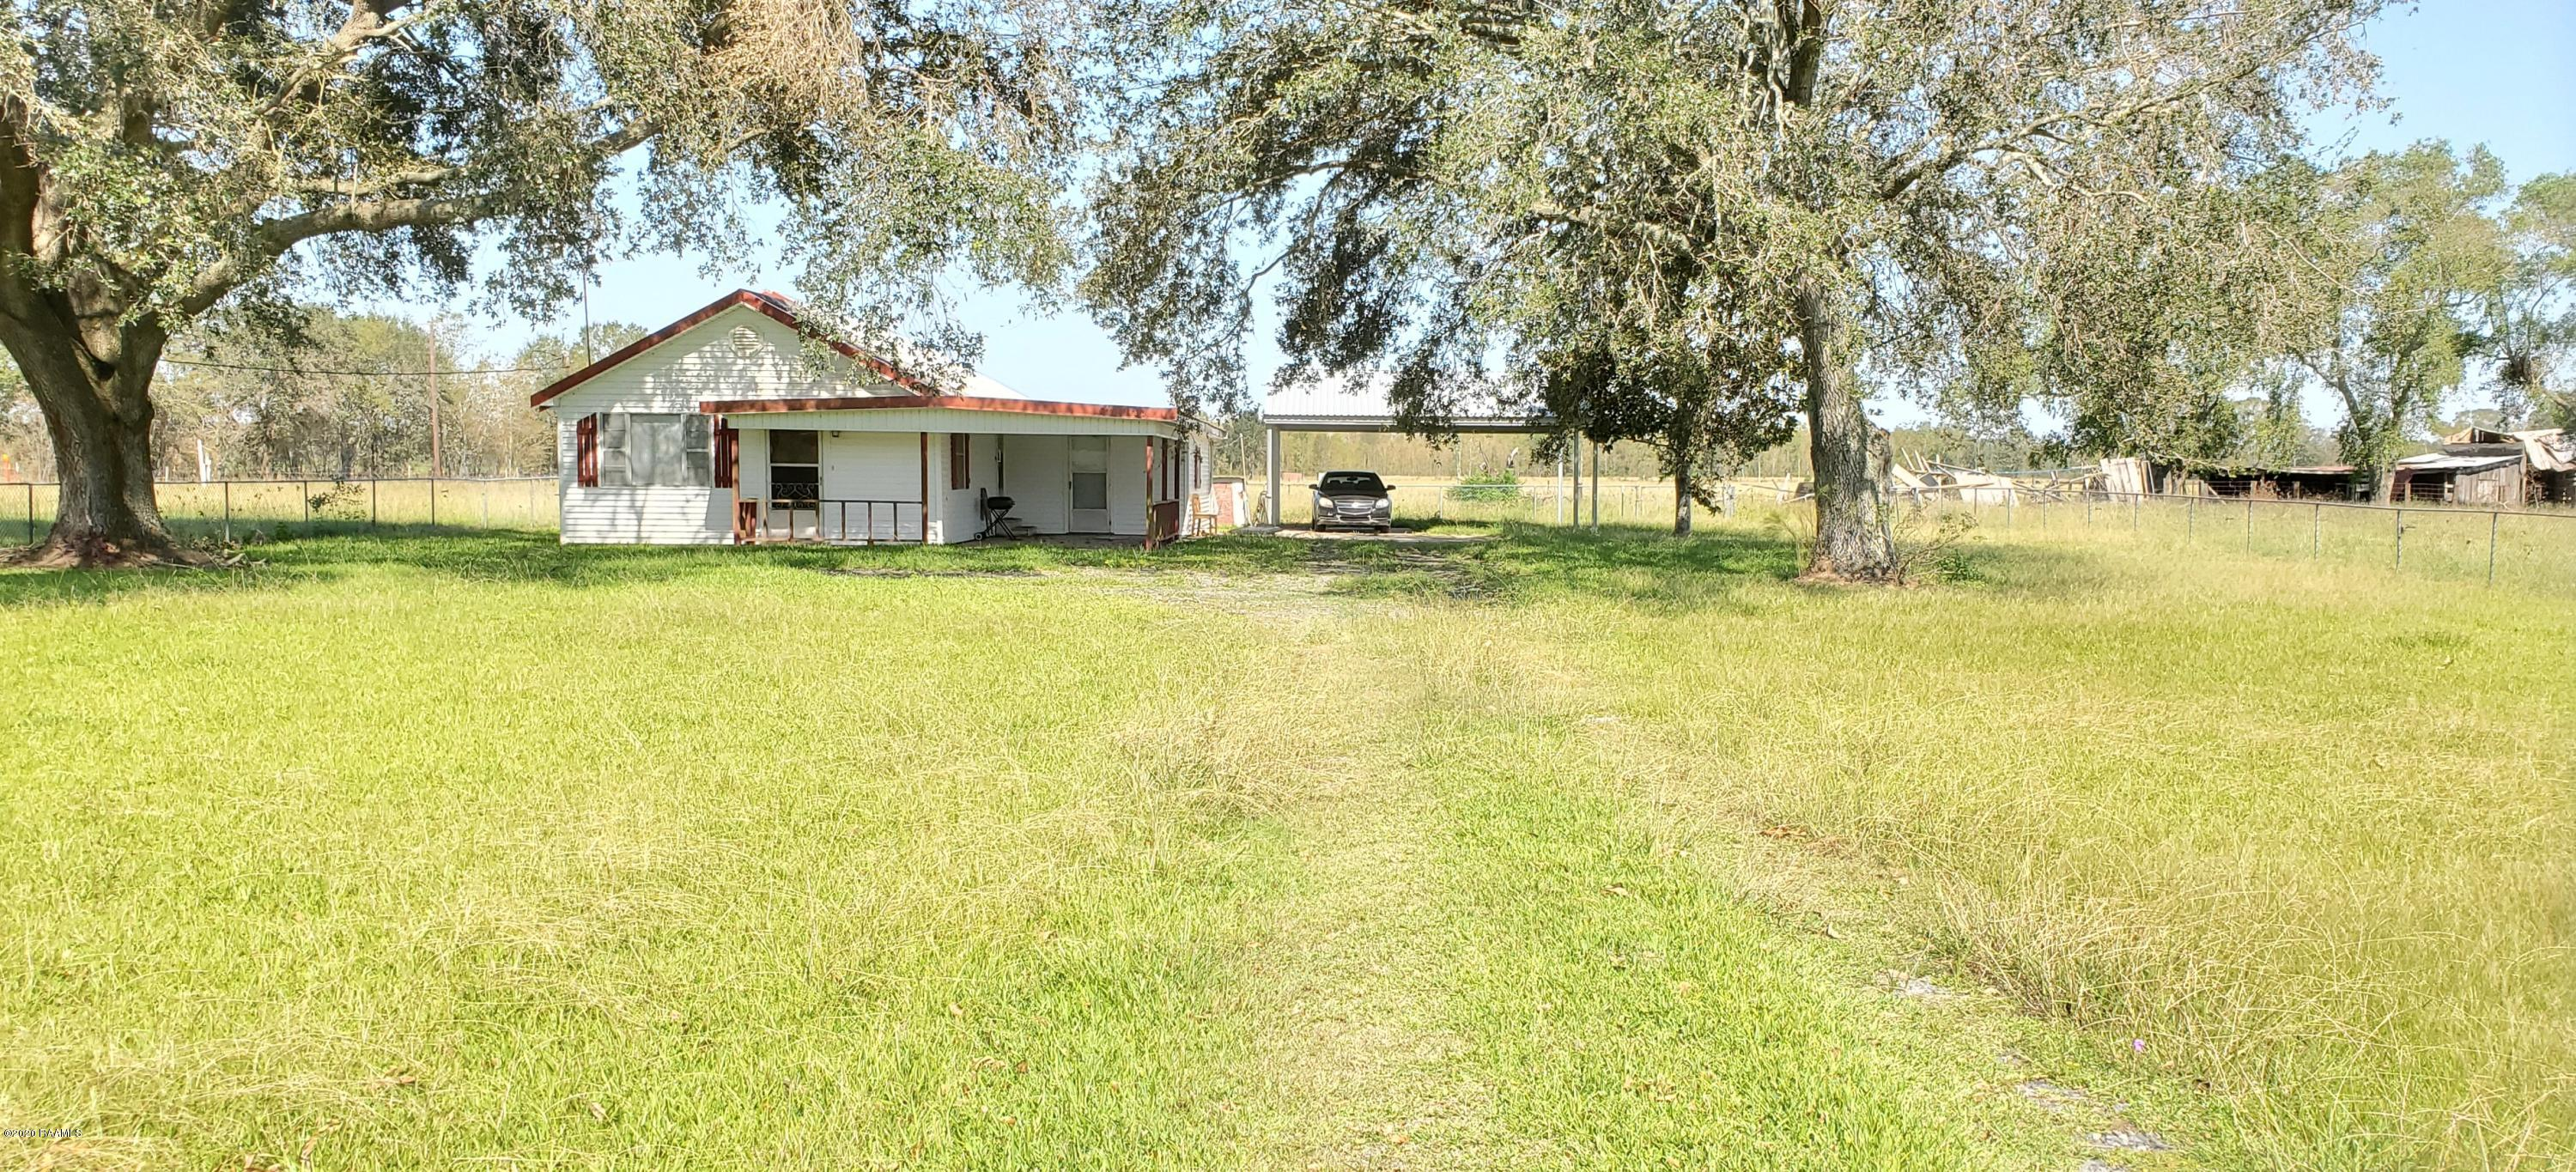 411 Grand Marais Road, Church Point, LA 70525 Photo #2